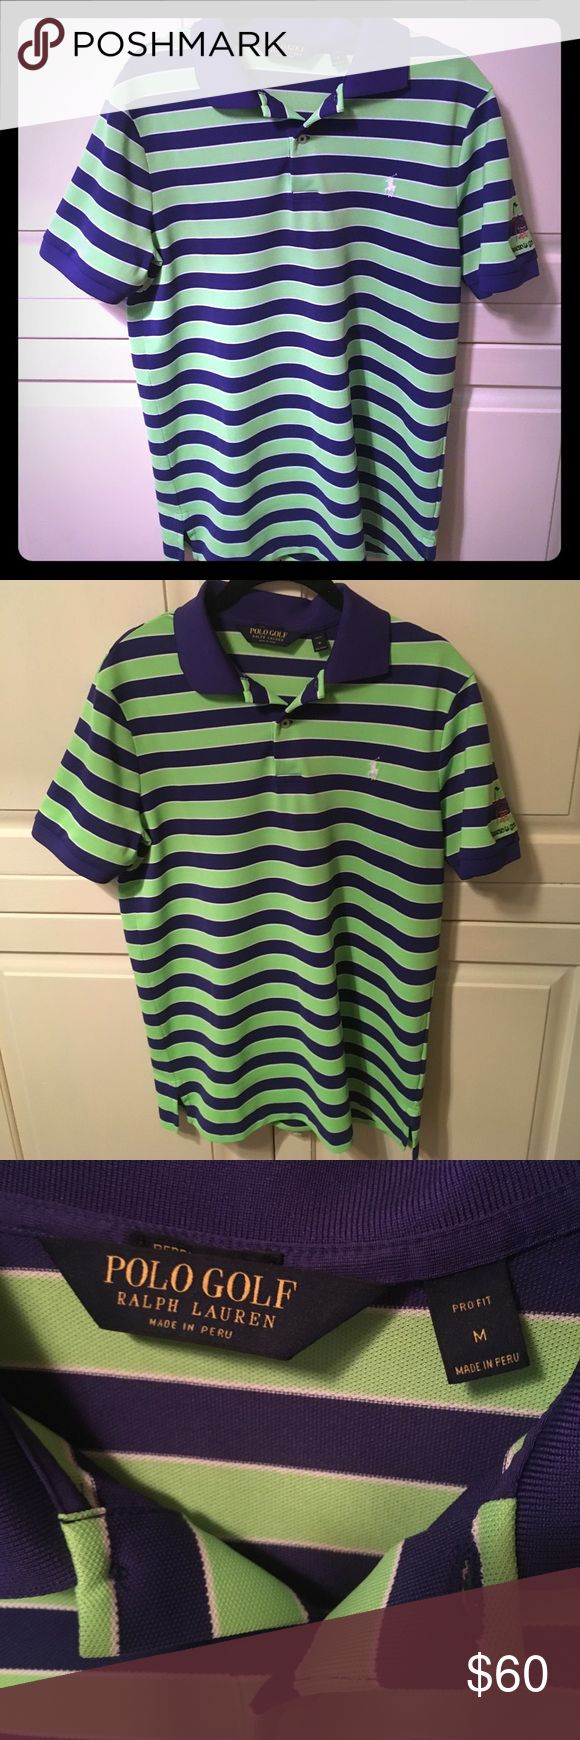 Polo Golf Performance Shirt Polo Ralph Lauren Golf shirt from the Country Club in California Rancho La Quinta! My boyfriend loves it but it is a tight fit for a Medium. BRAND NEW NEVER WORN - we took tag off and are looking for it currently. Polo by Ralph Lauren Shirts Polos